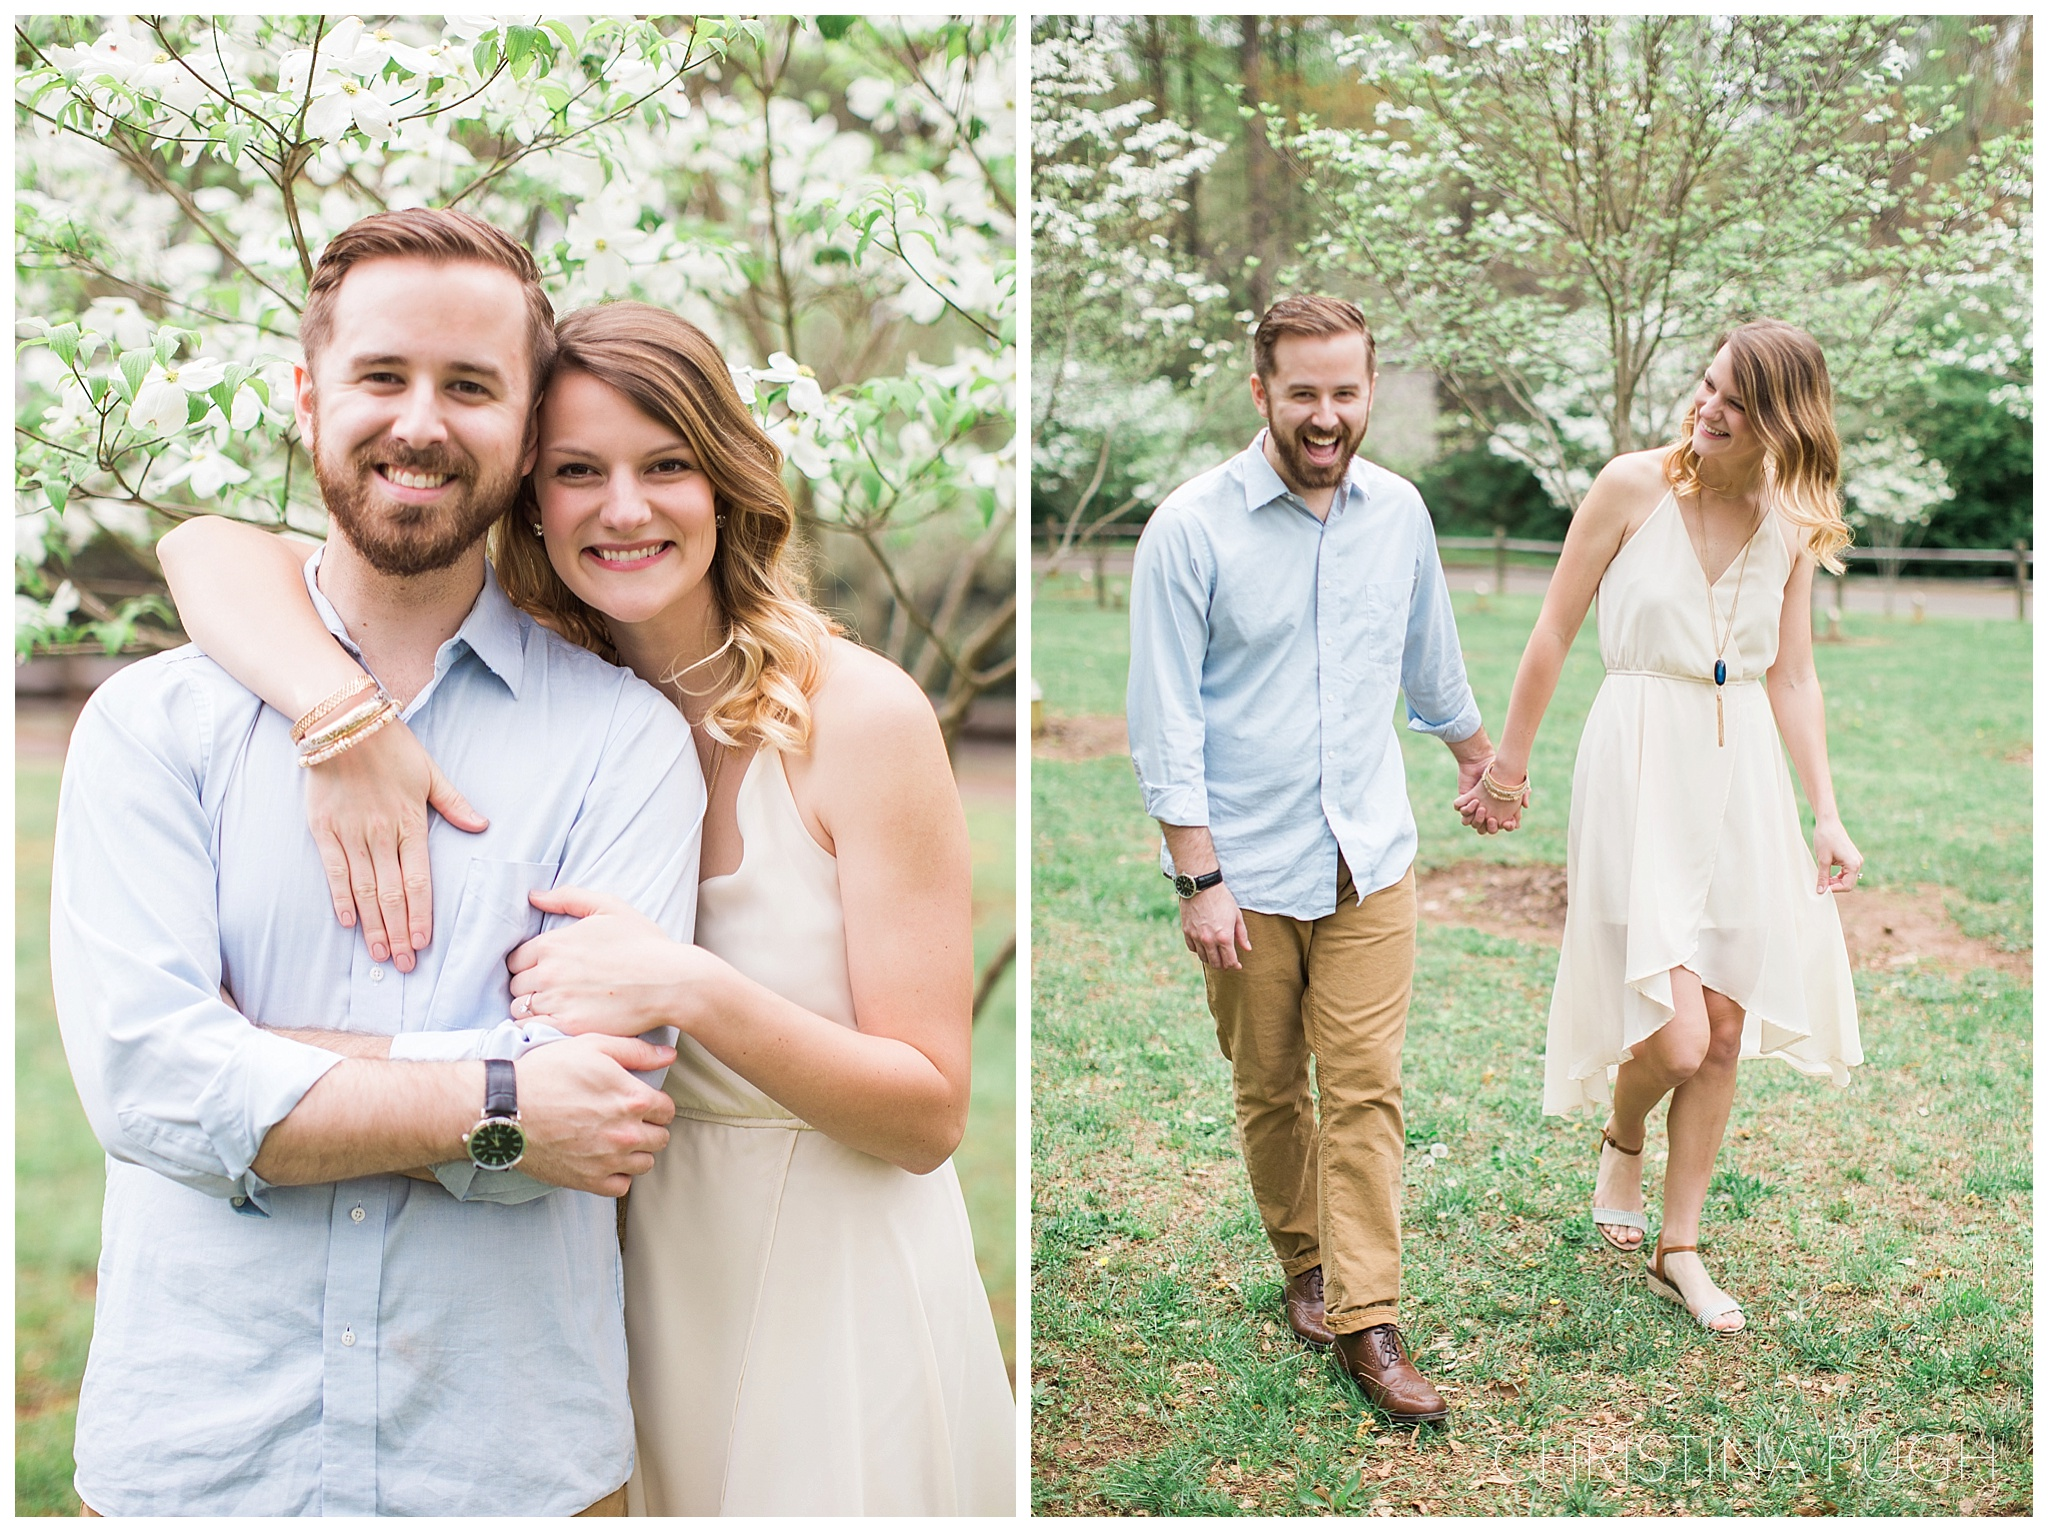 Acworth-Kennesaw-Engagement-Photography-Christina-Pugh-5